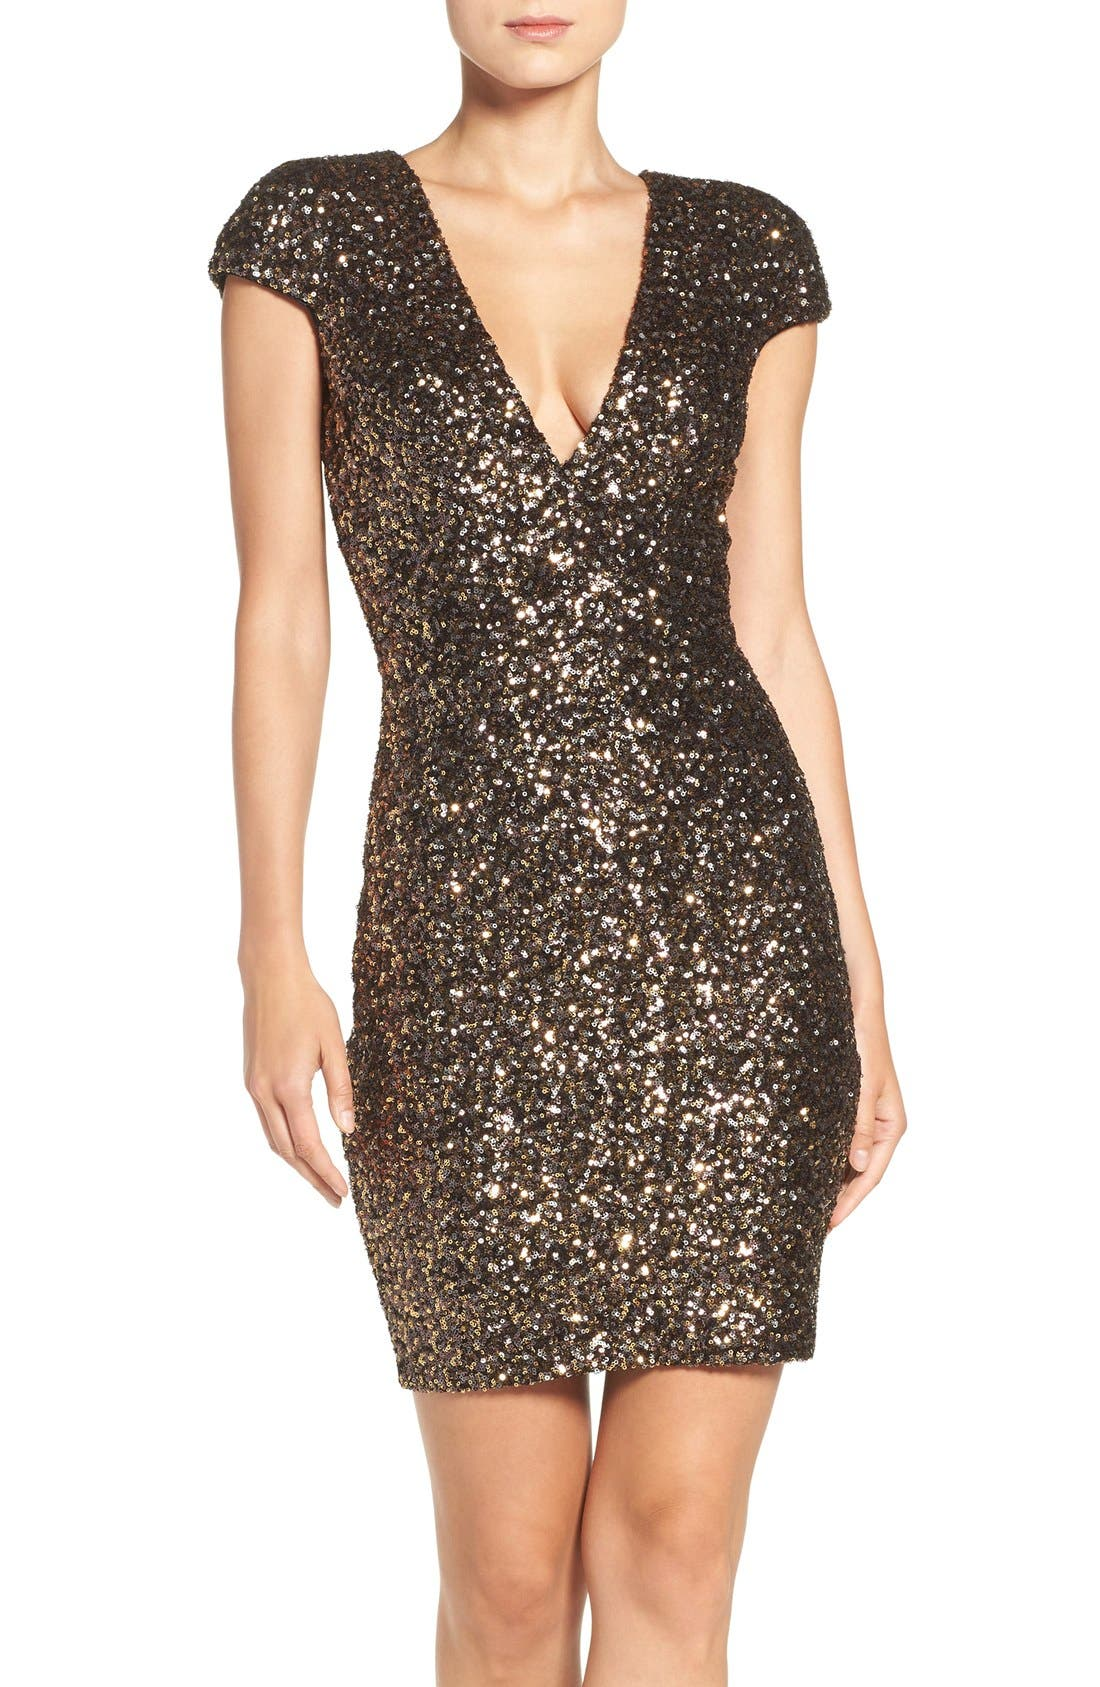 Bar 3 black dress nordstrom